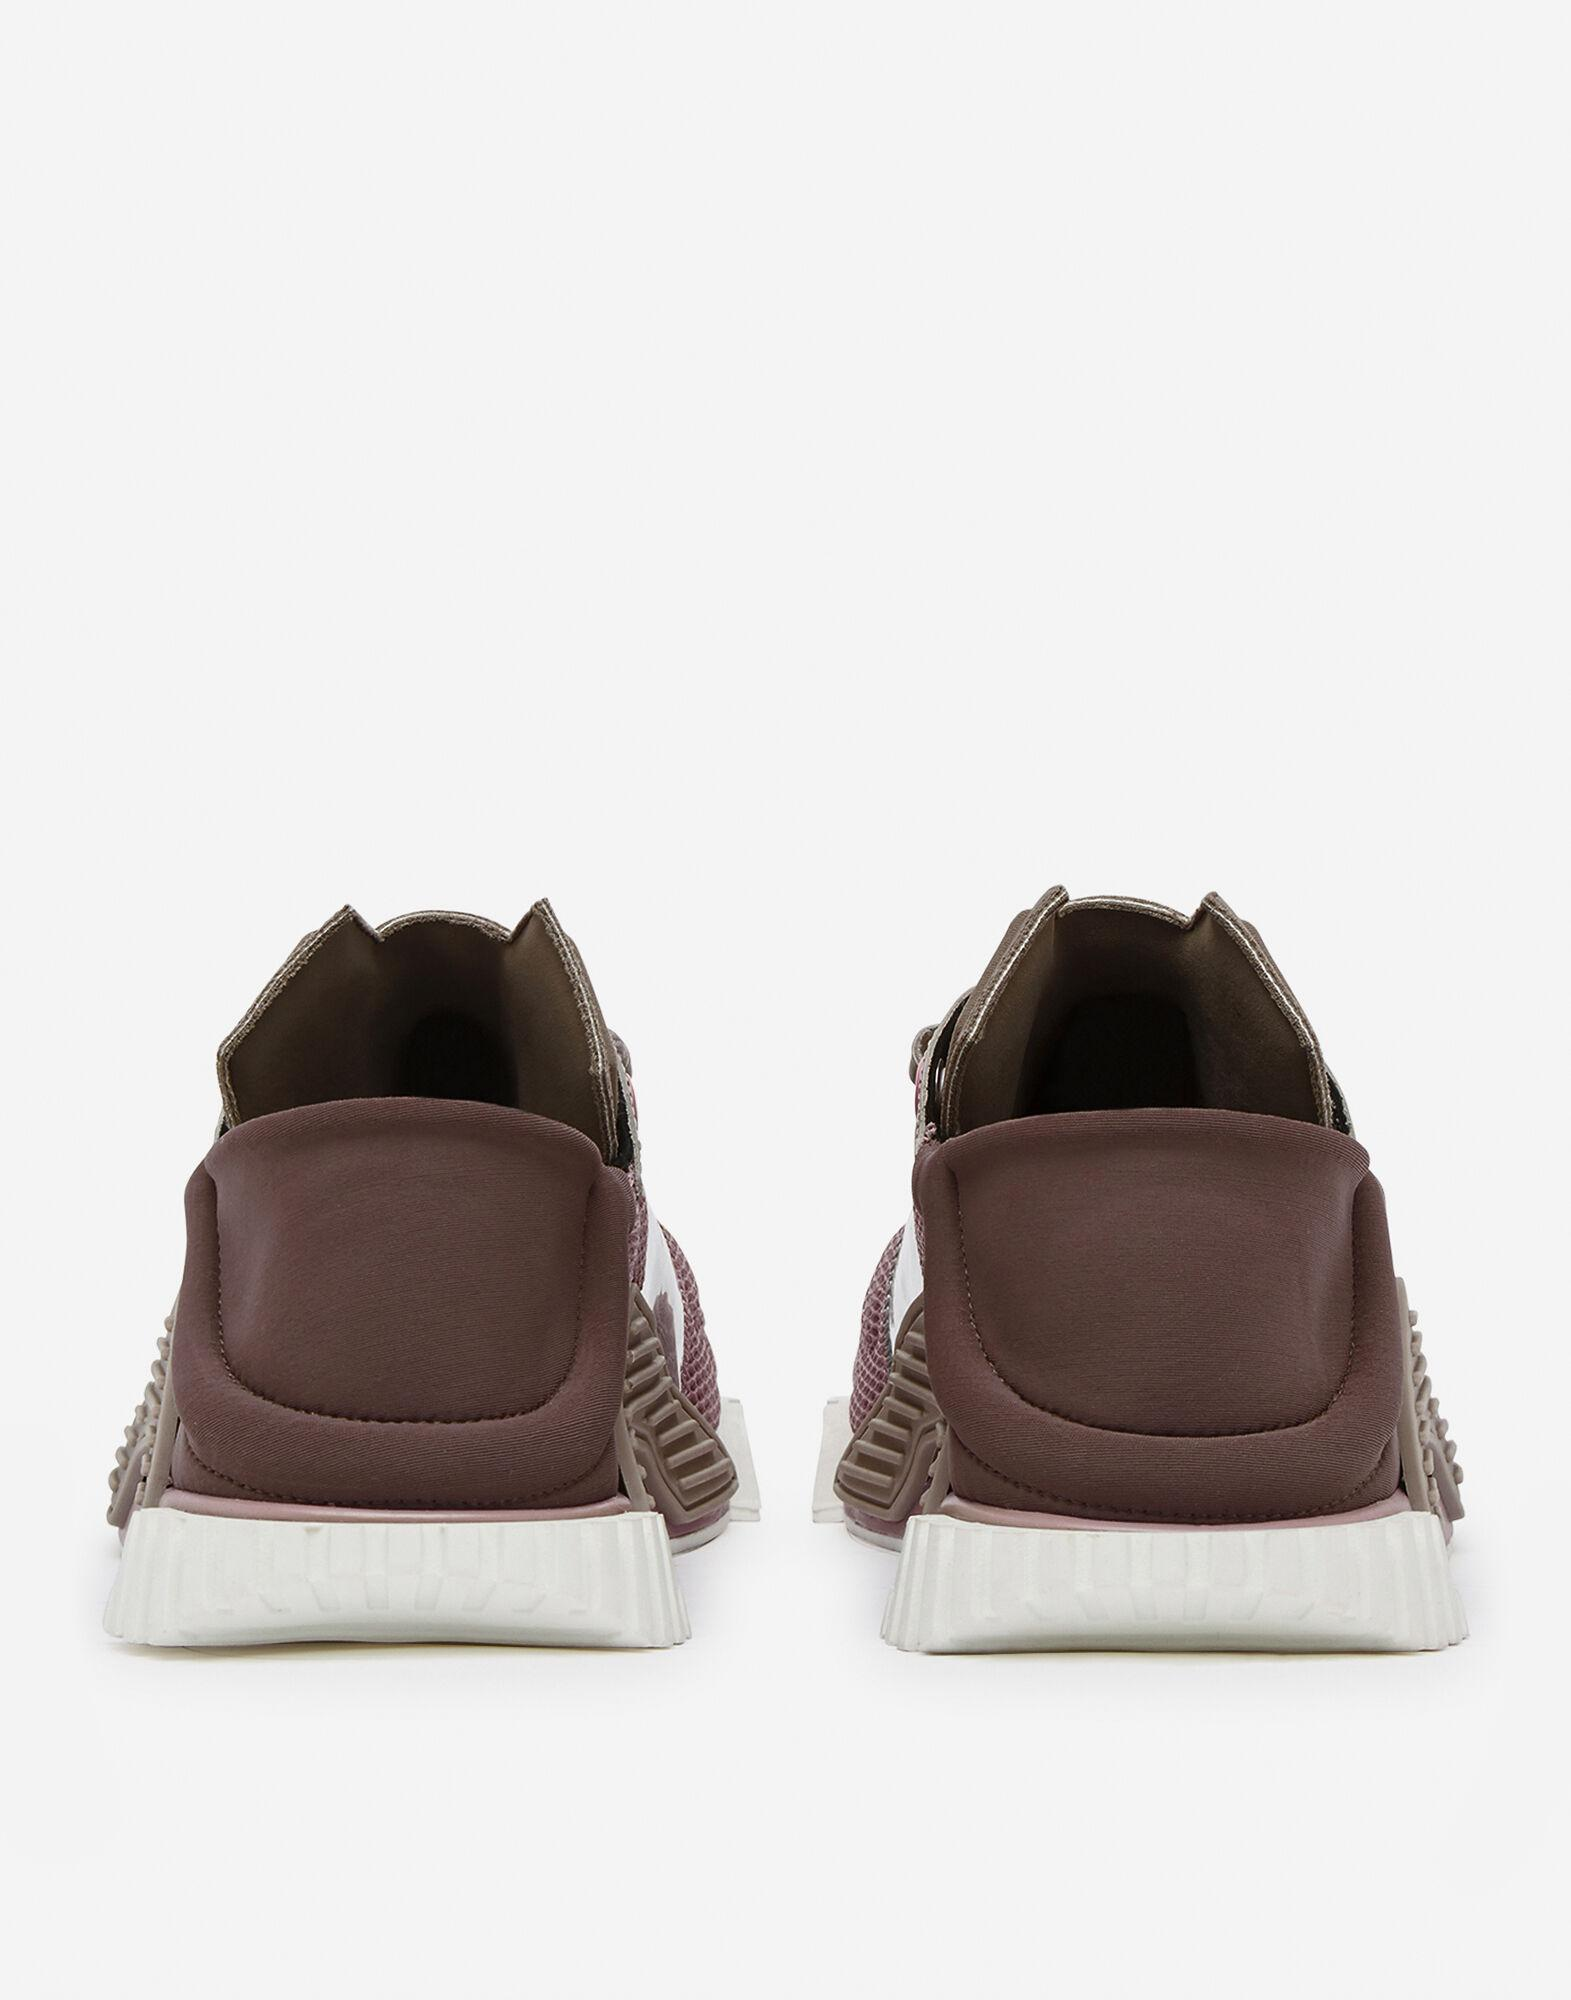 NS1 slip on sneakers in mixed materials 2